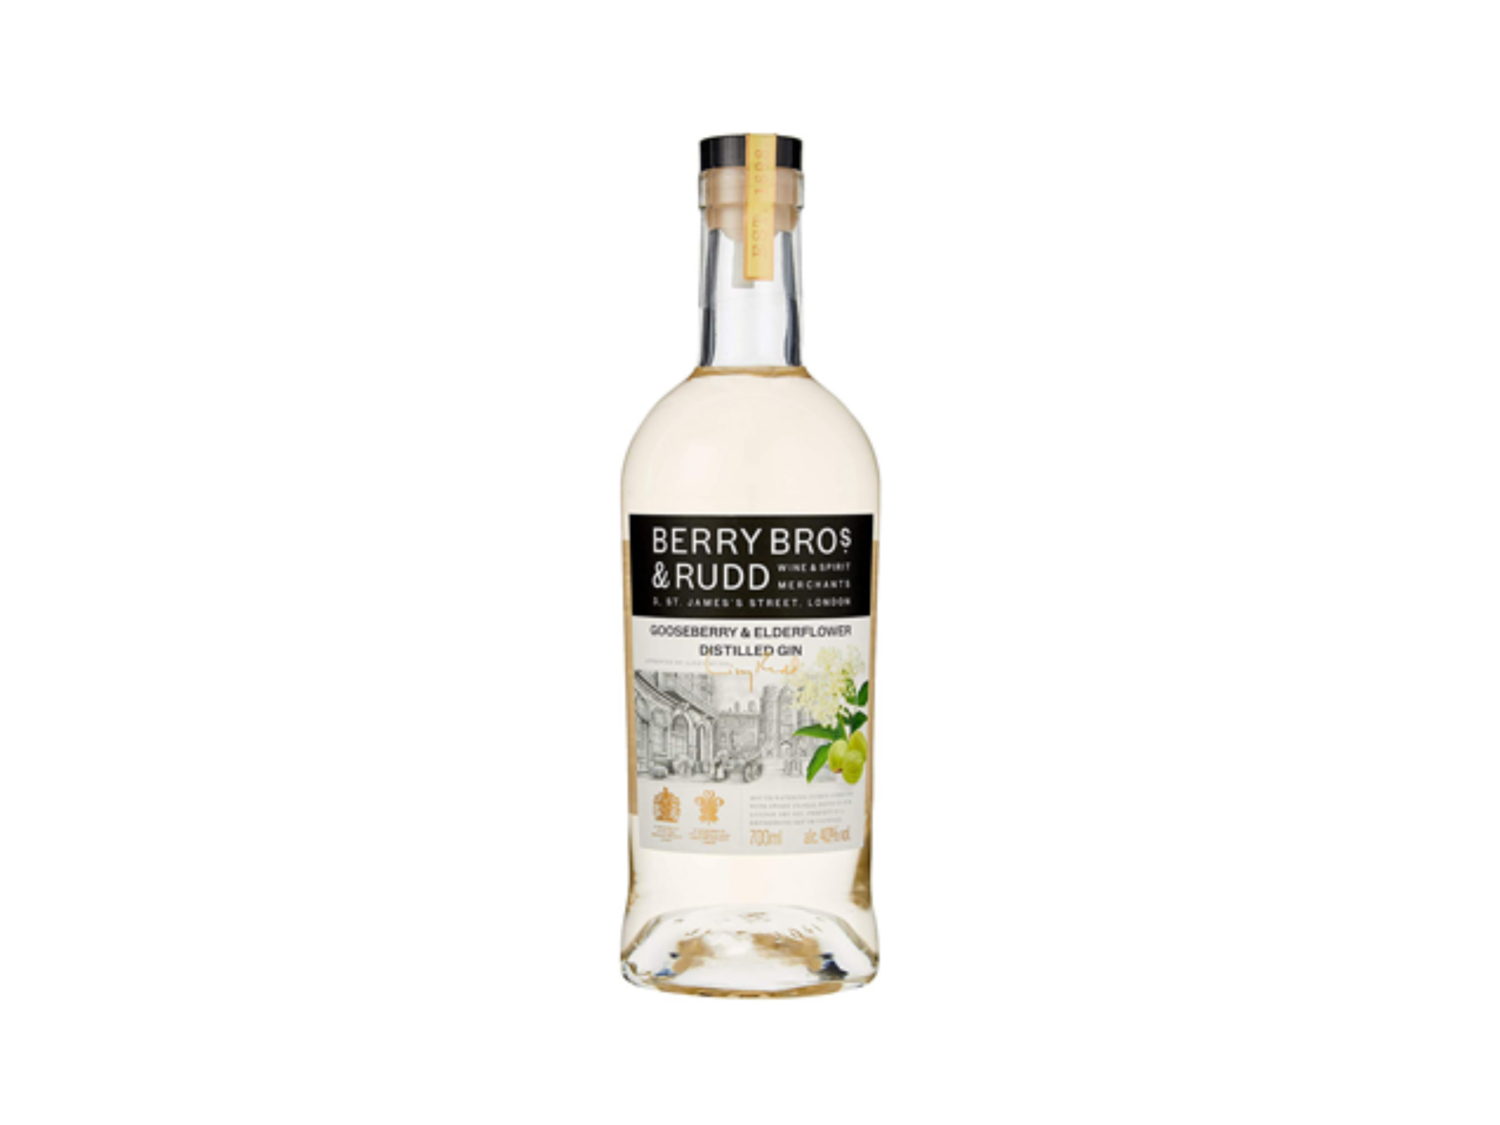 Berry Bros. & Rudd Elderflower & Gooseberry Distilled Gin (700mL)